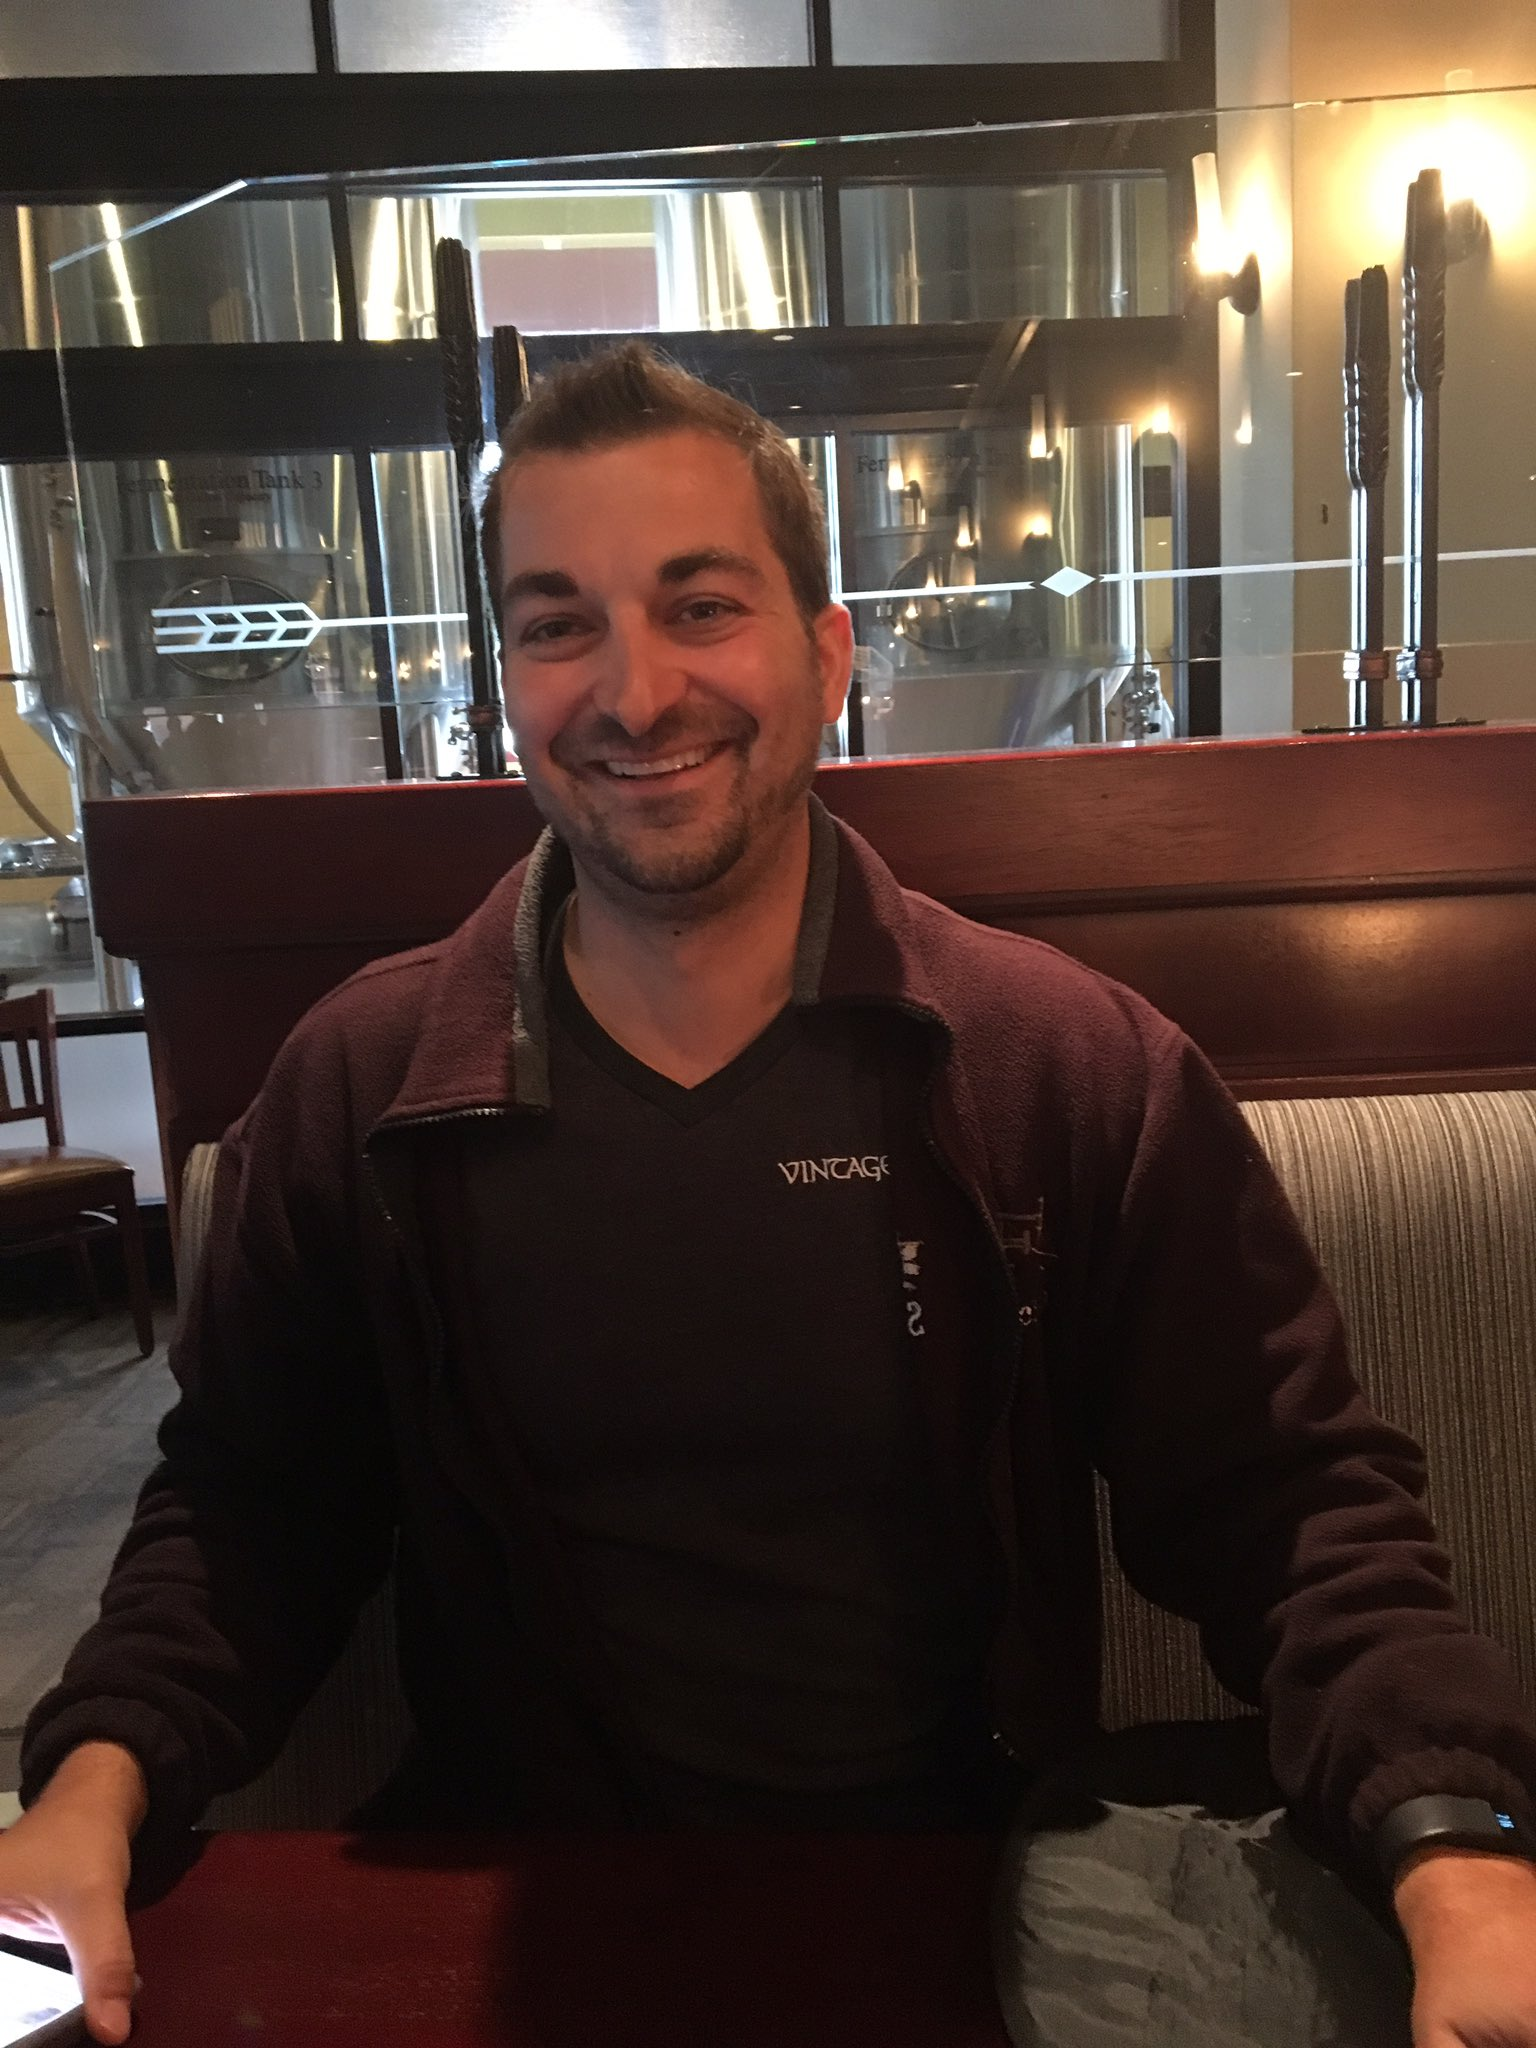 https://pbs.twimg.com/media/CvyzztGXEAENumO.jpg:large